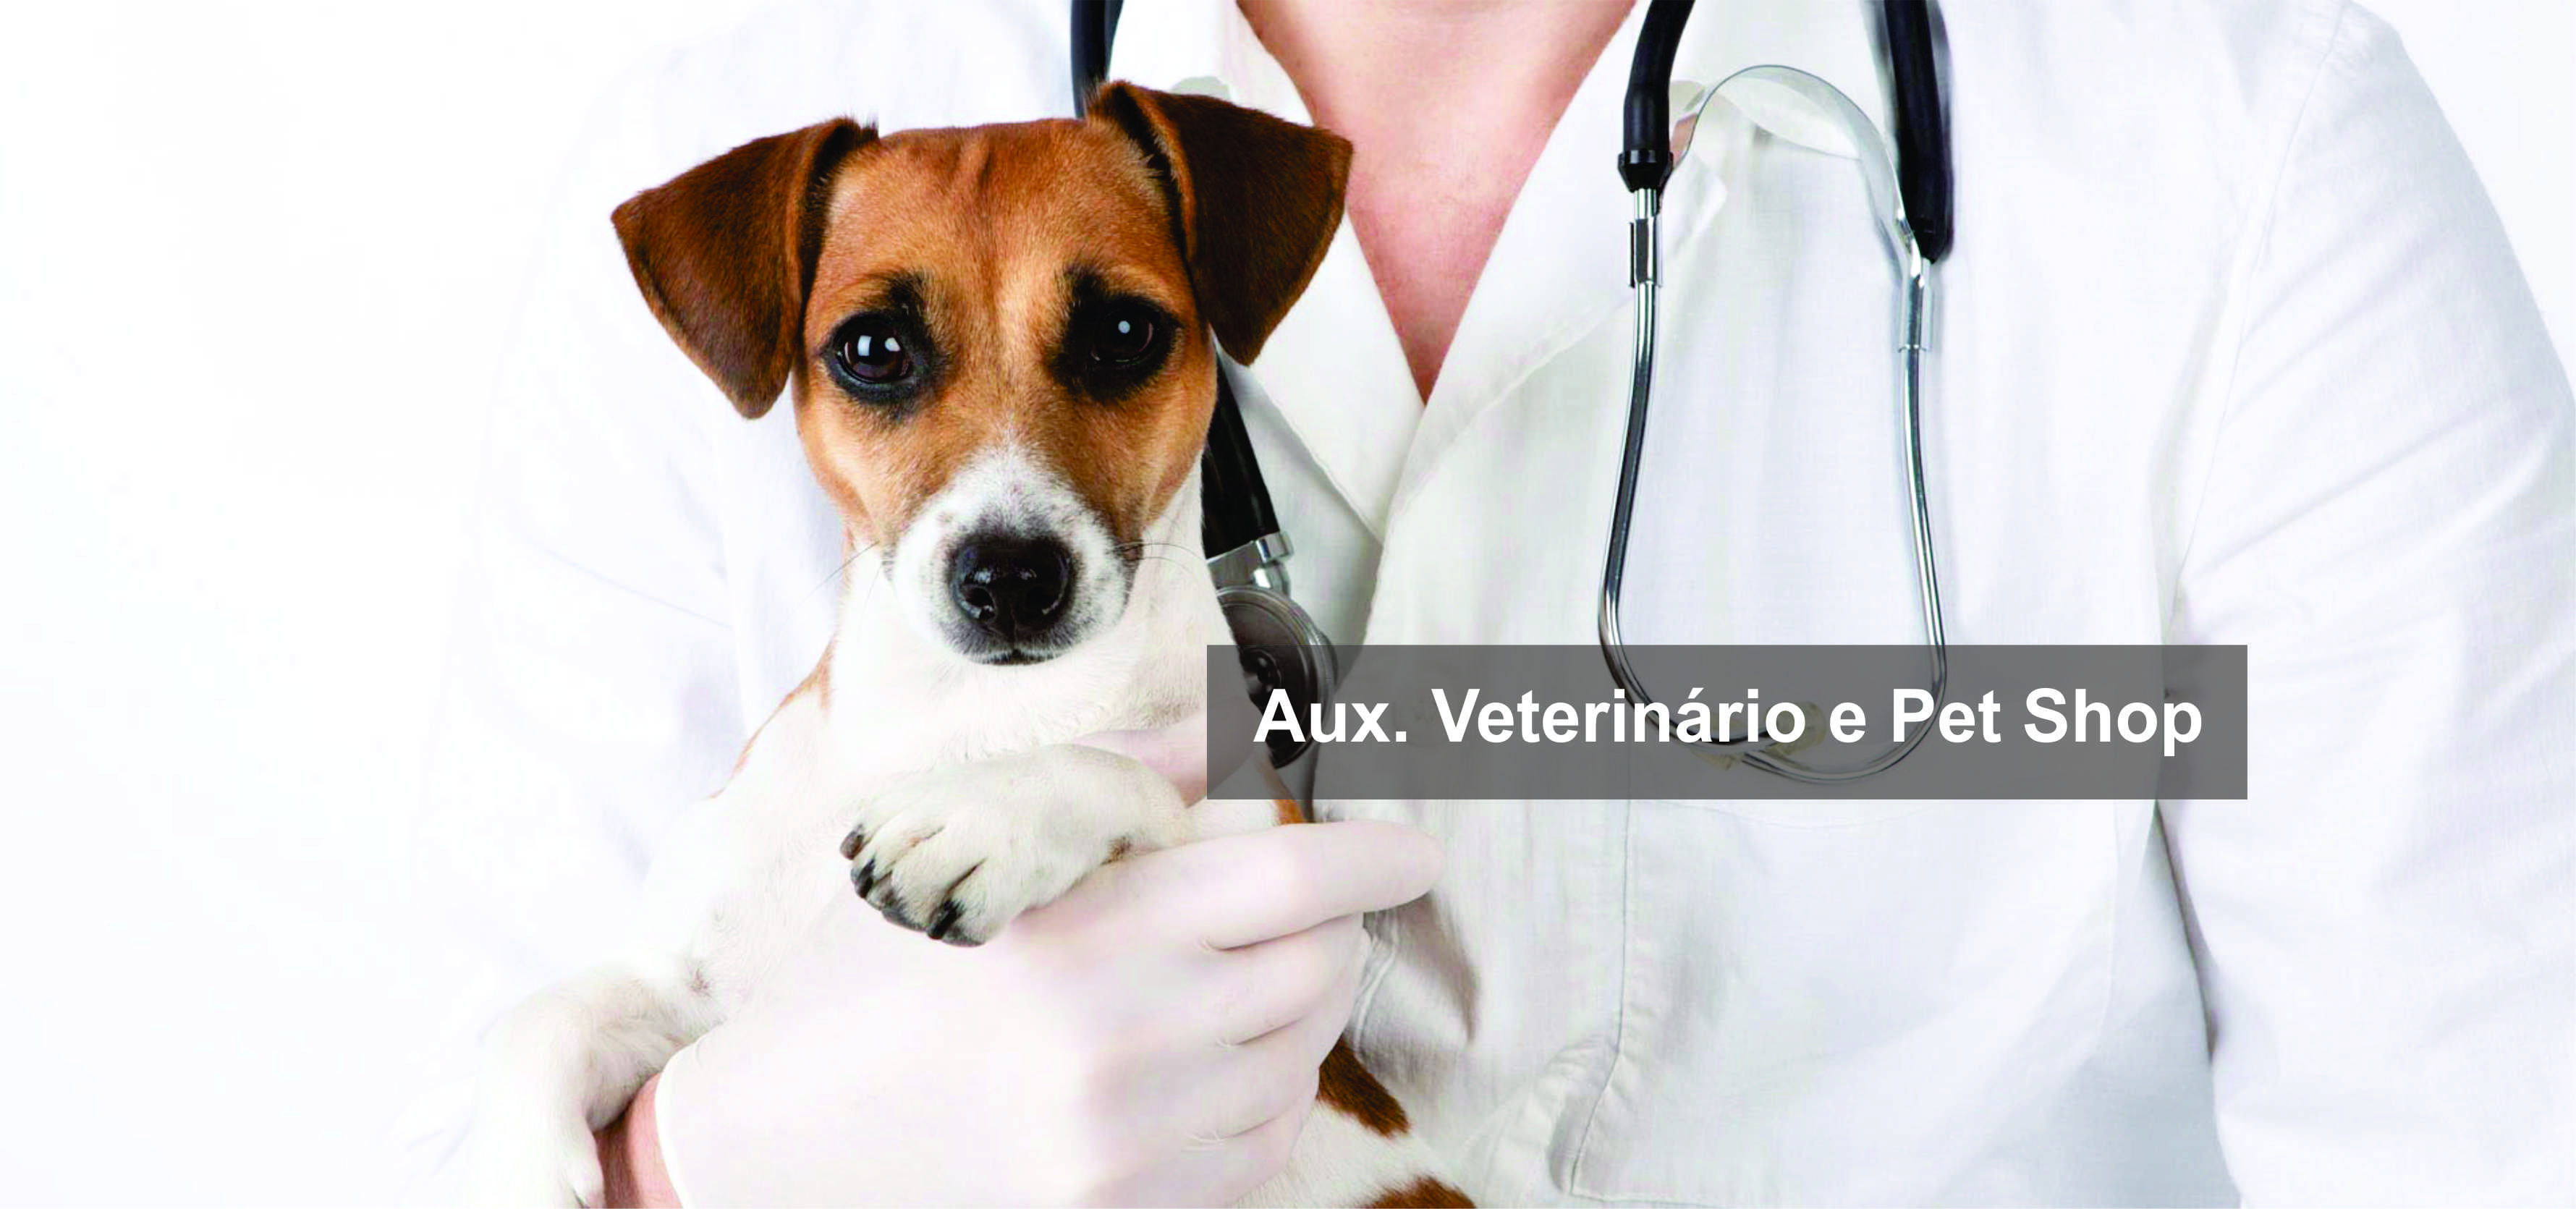 Aux. Vet. e Pet Shop